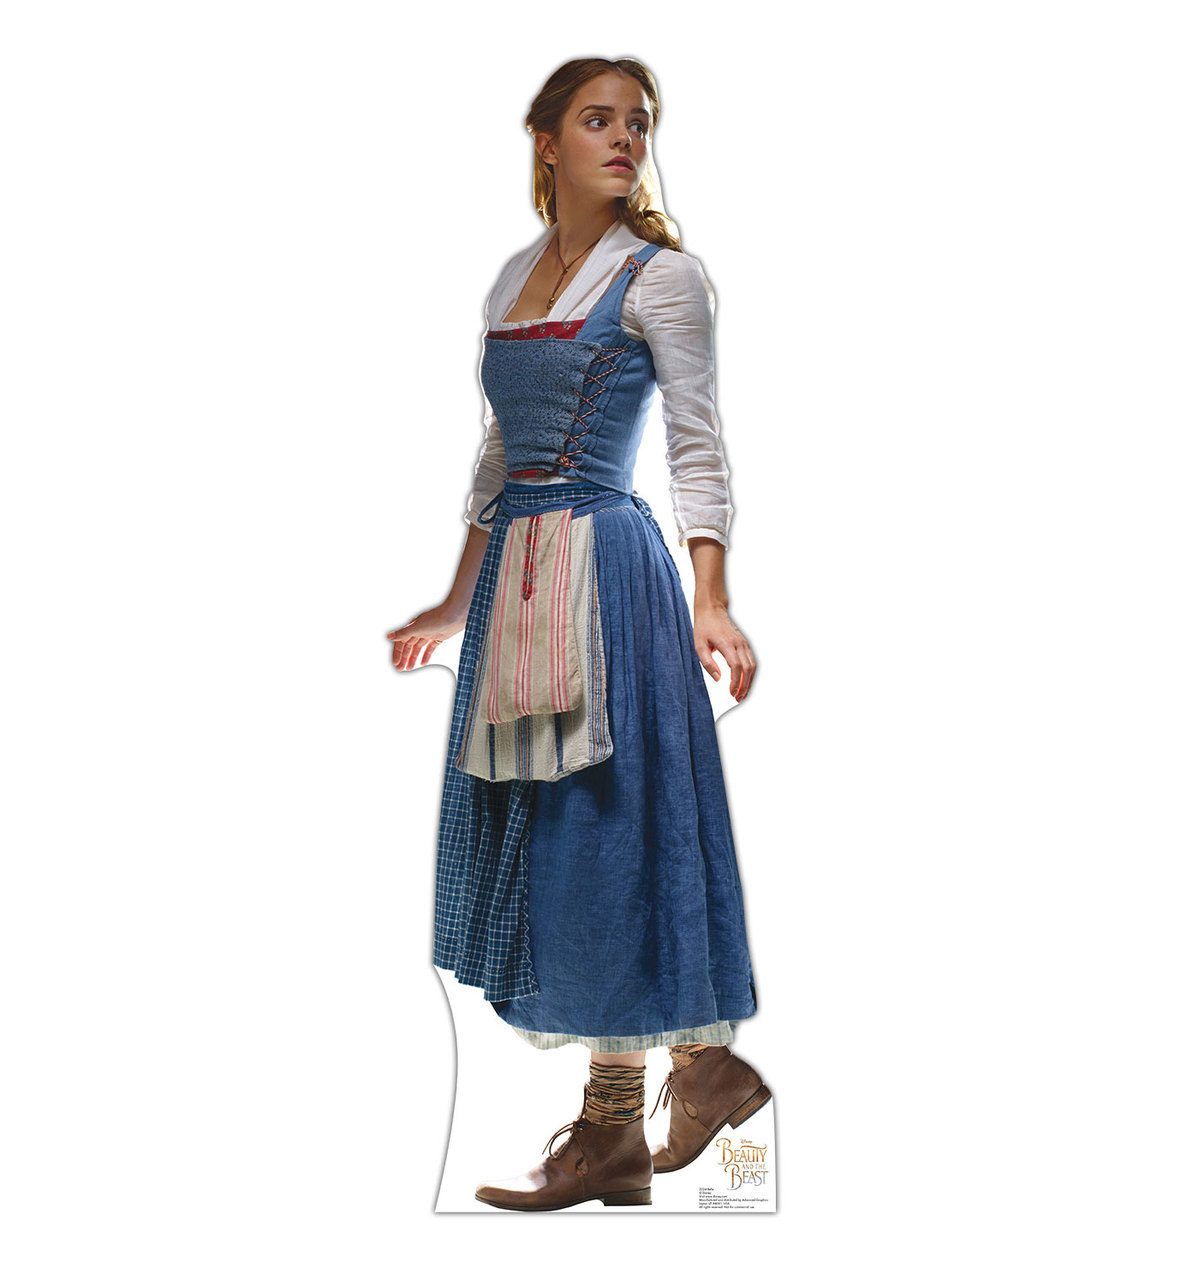 Life-size Belle (Disney's Beauty and the Beast) Cardboard Standup 3